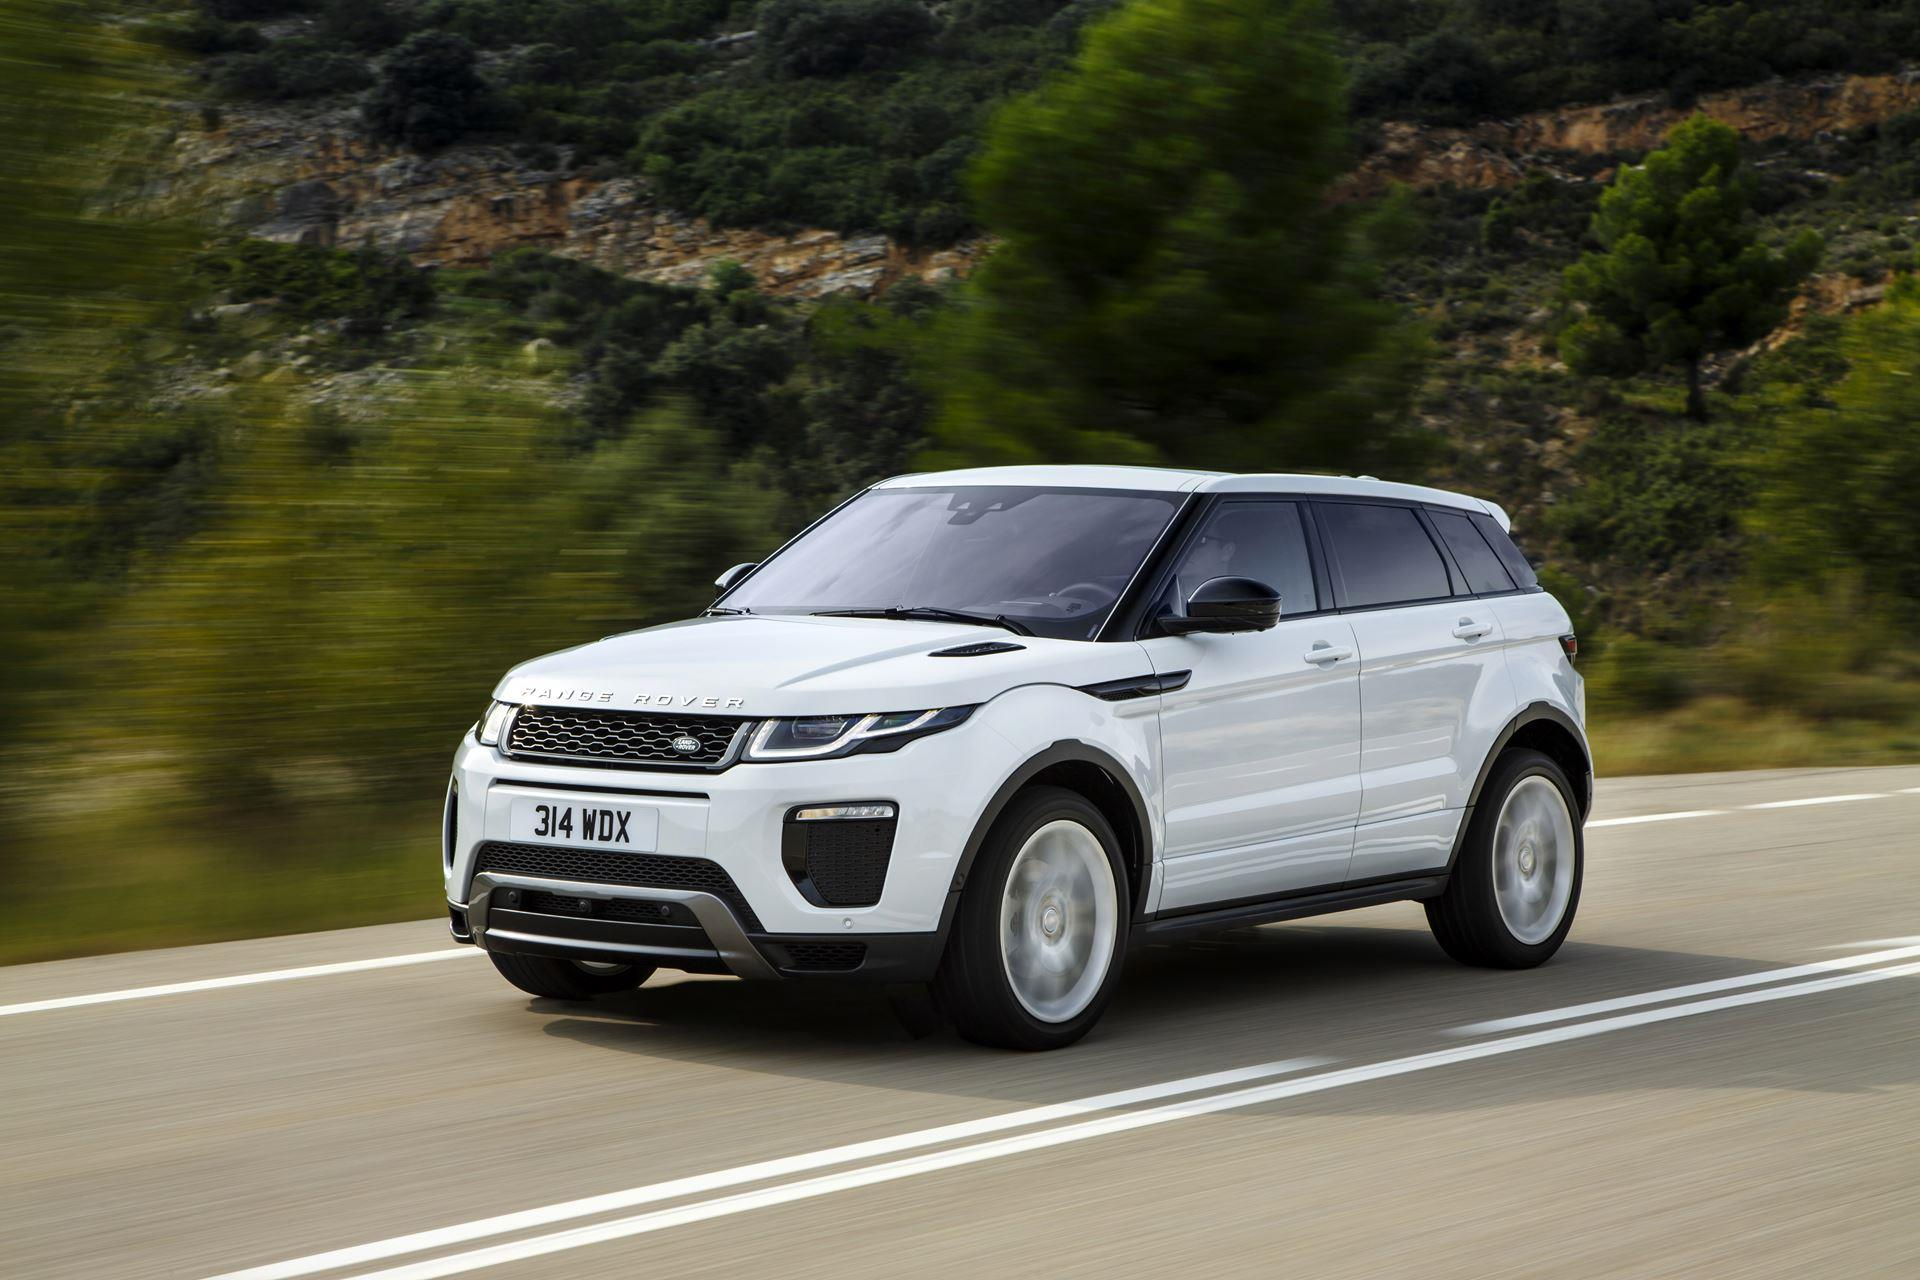 range evoque test front price motor rover quarters review convertible landrover land trend three first cars